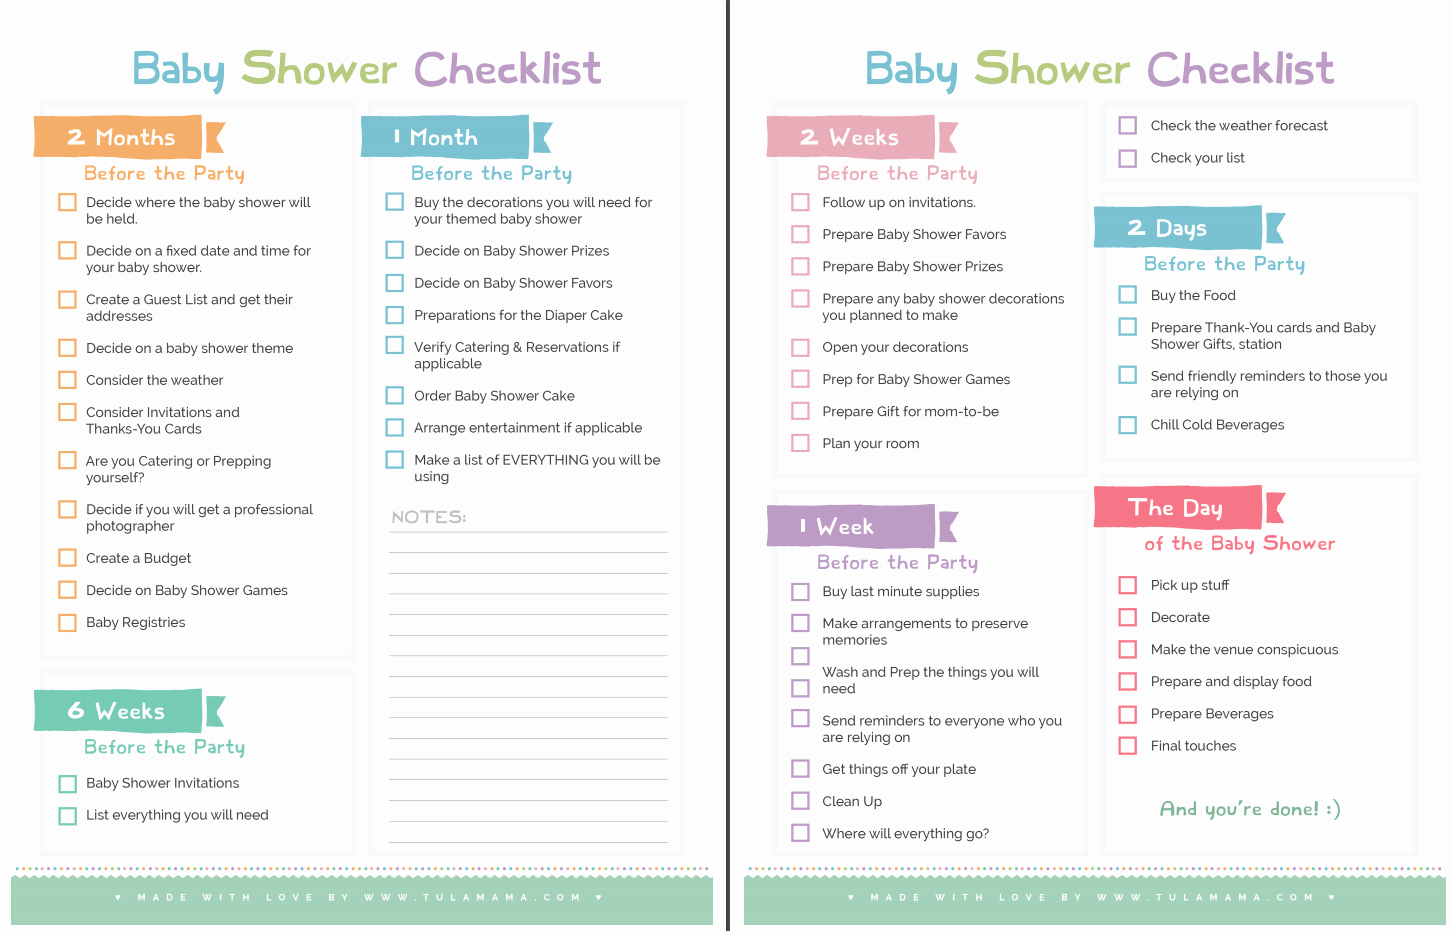 Baby Shower Checklist Template Best Of the Ly Baby Shower Checklist You Will Need Tulamama